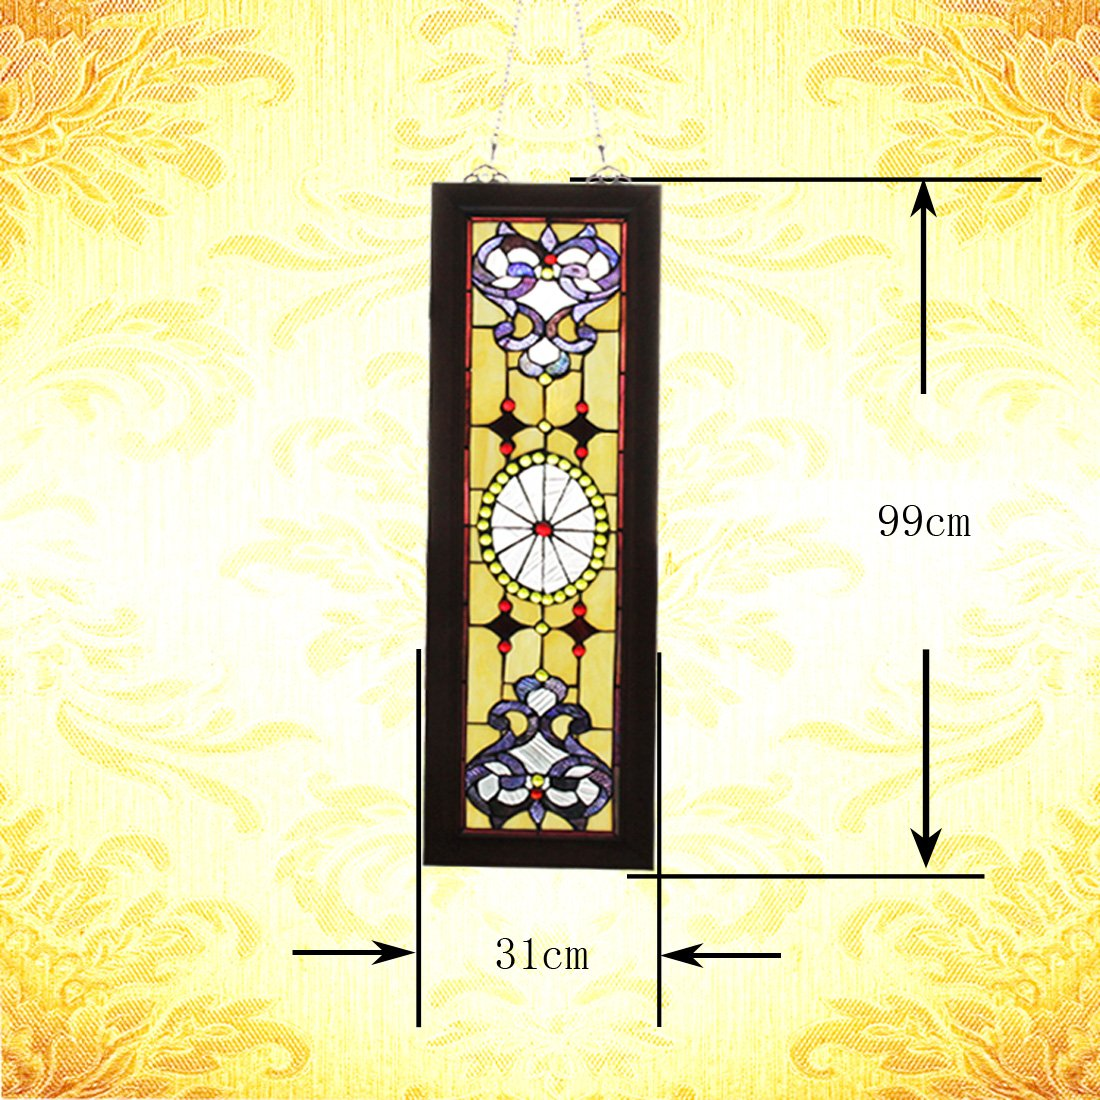 Makenier Vintage Tiffany Style Stained Church Art Glass Decorative Long and Narrow Window Panel Wall Hanging 11